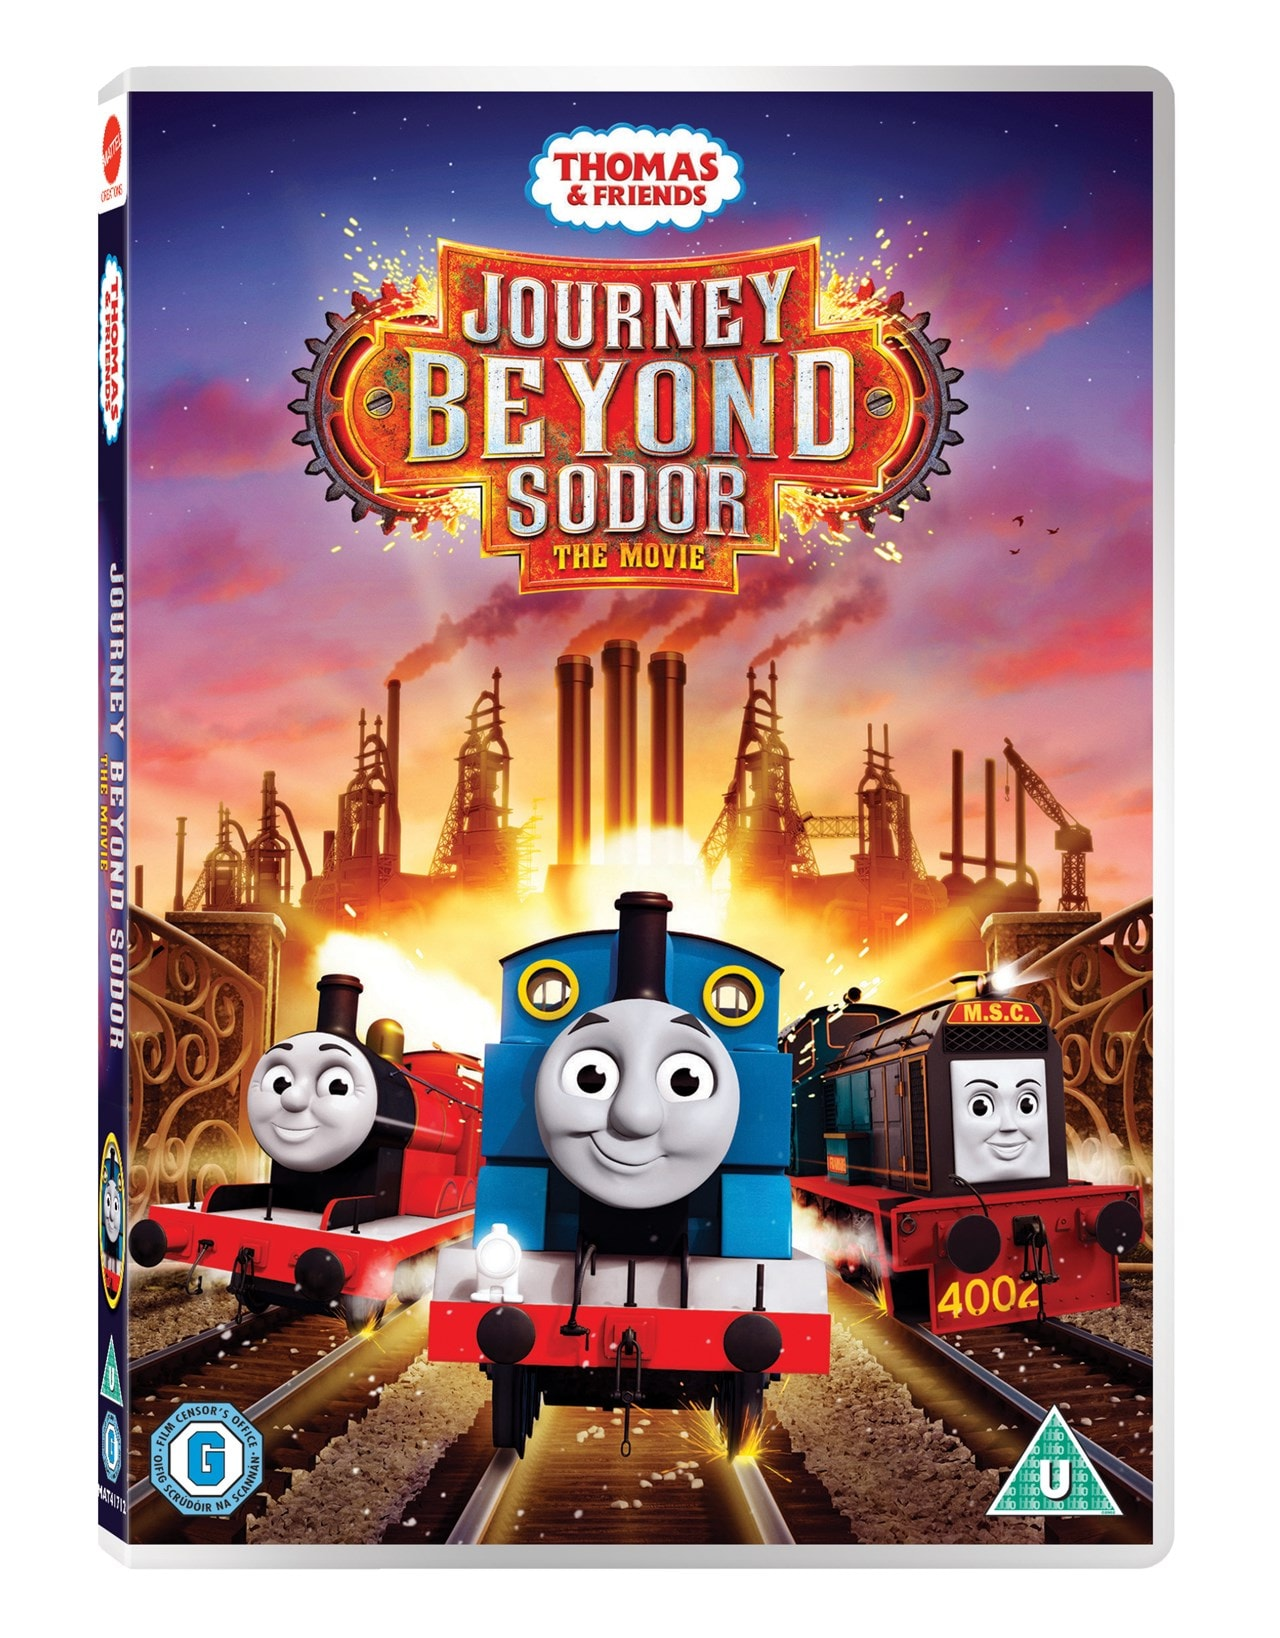 Thomas & Friends: Journey Beyond Sodor - The Movie - 2